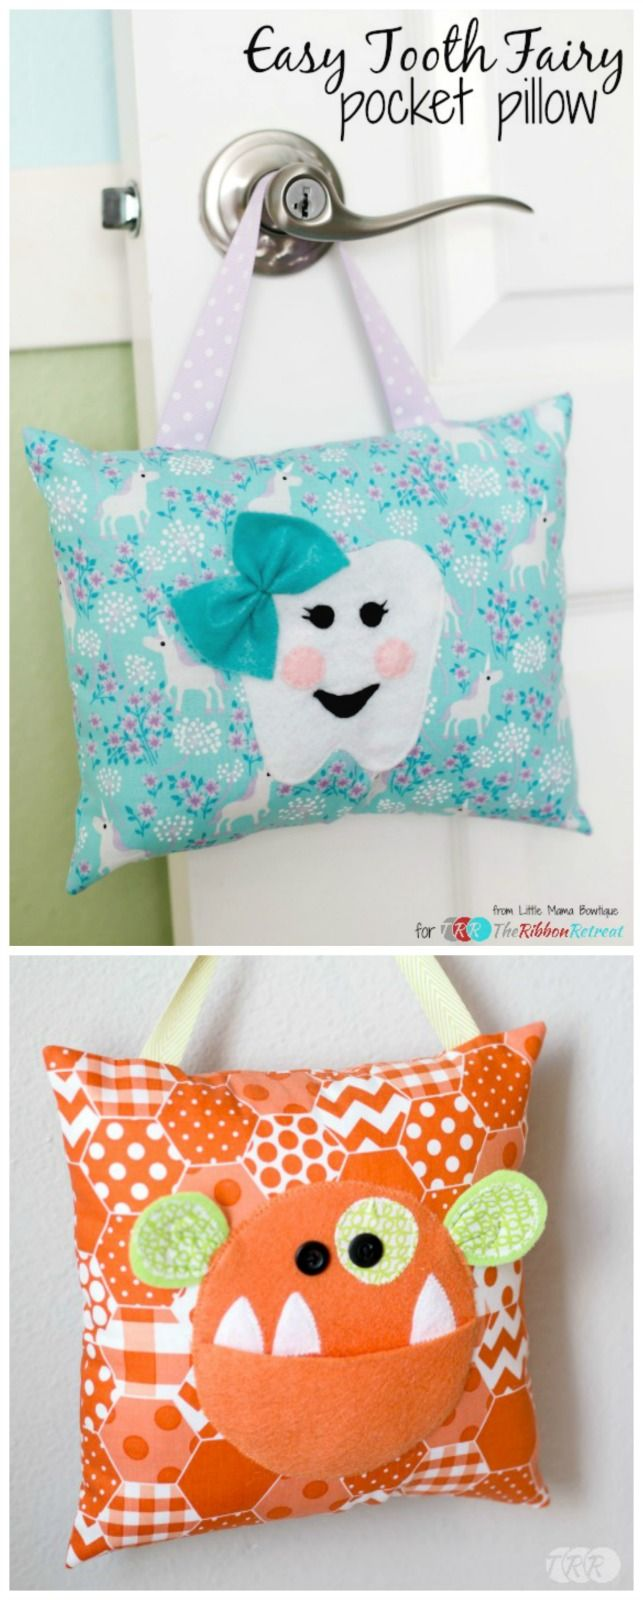 Easy Tooth Fairy Pocket Pillow - The Ribbon Retreat Blog | Crafty ...